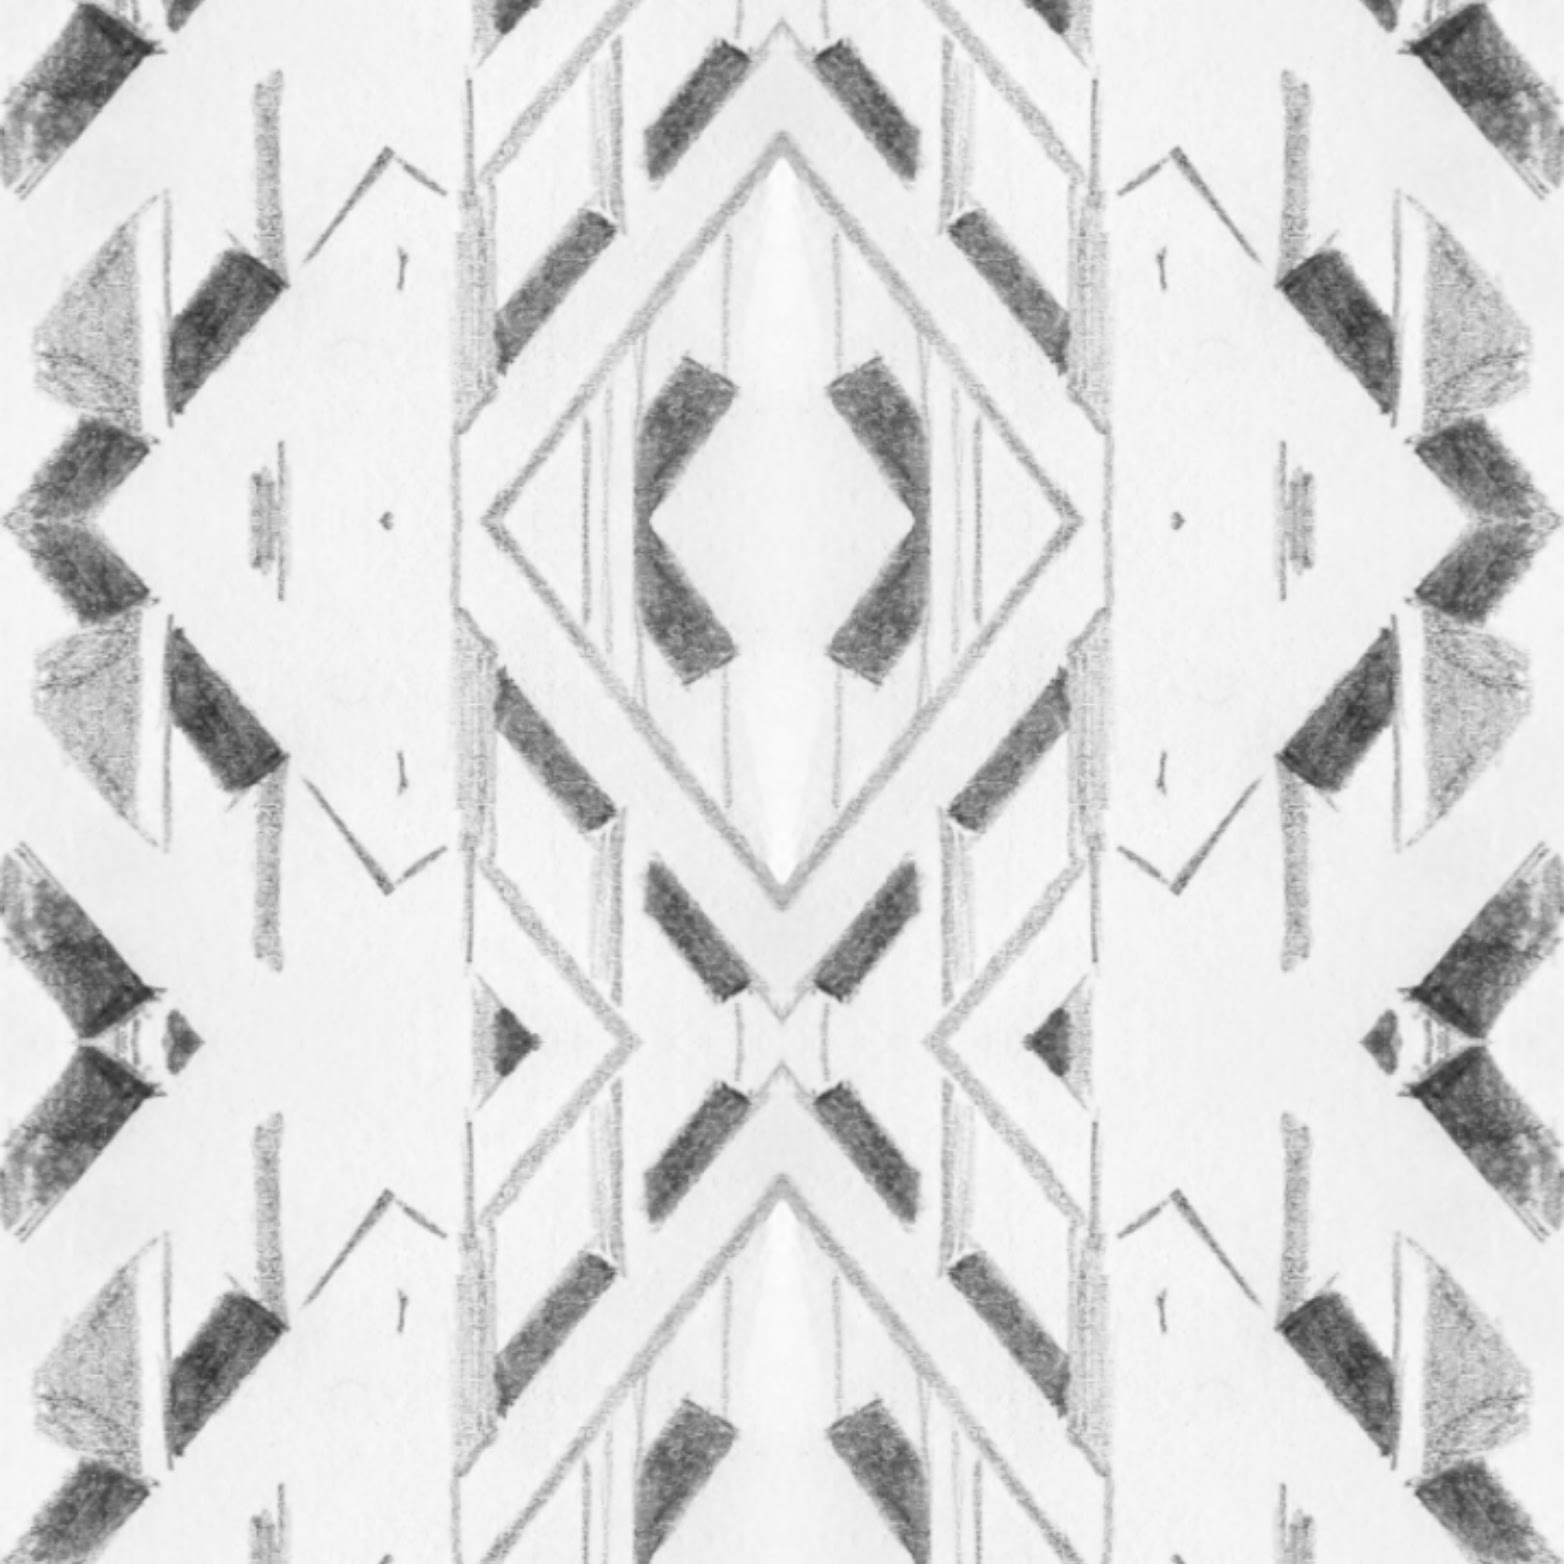 architectural pattern drawing 7 wave